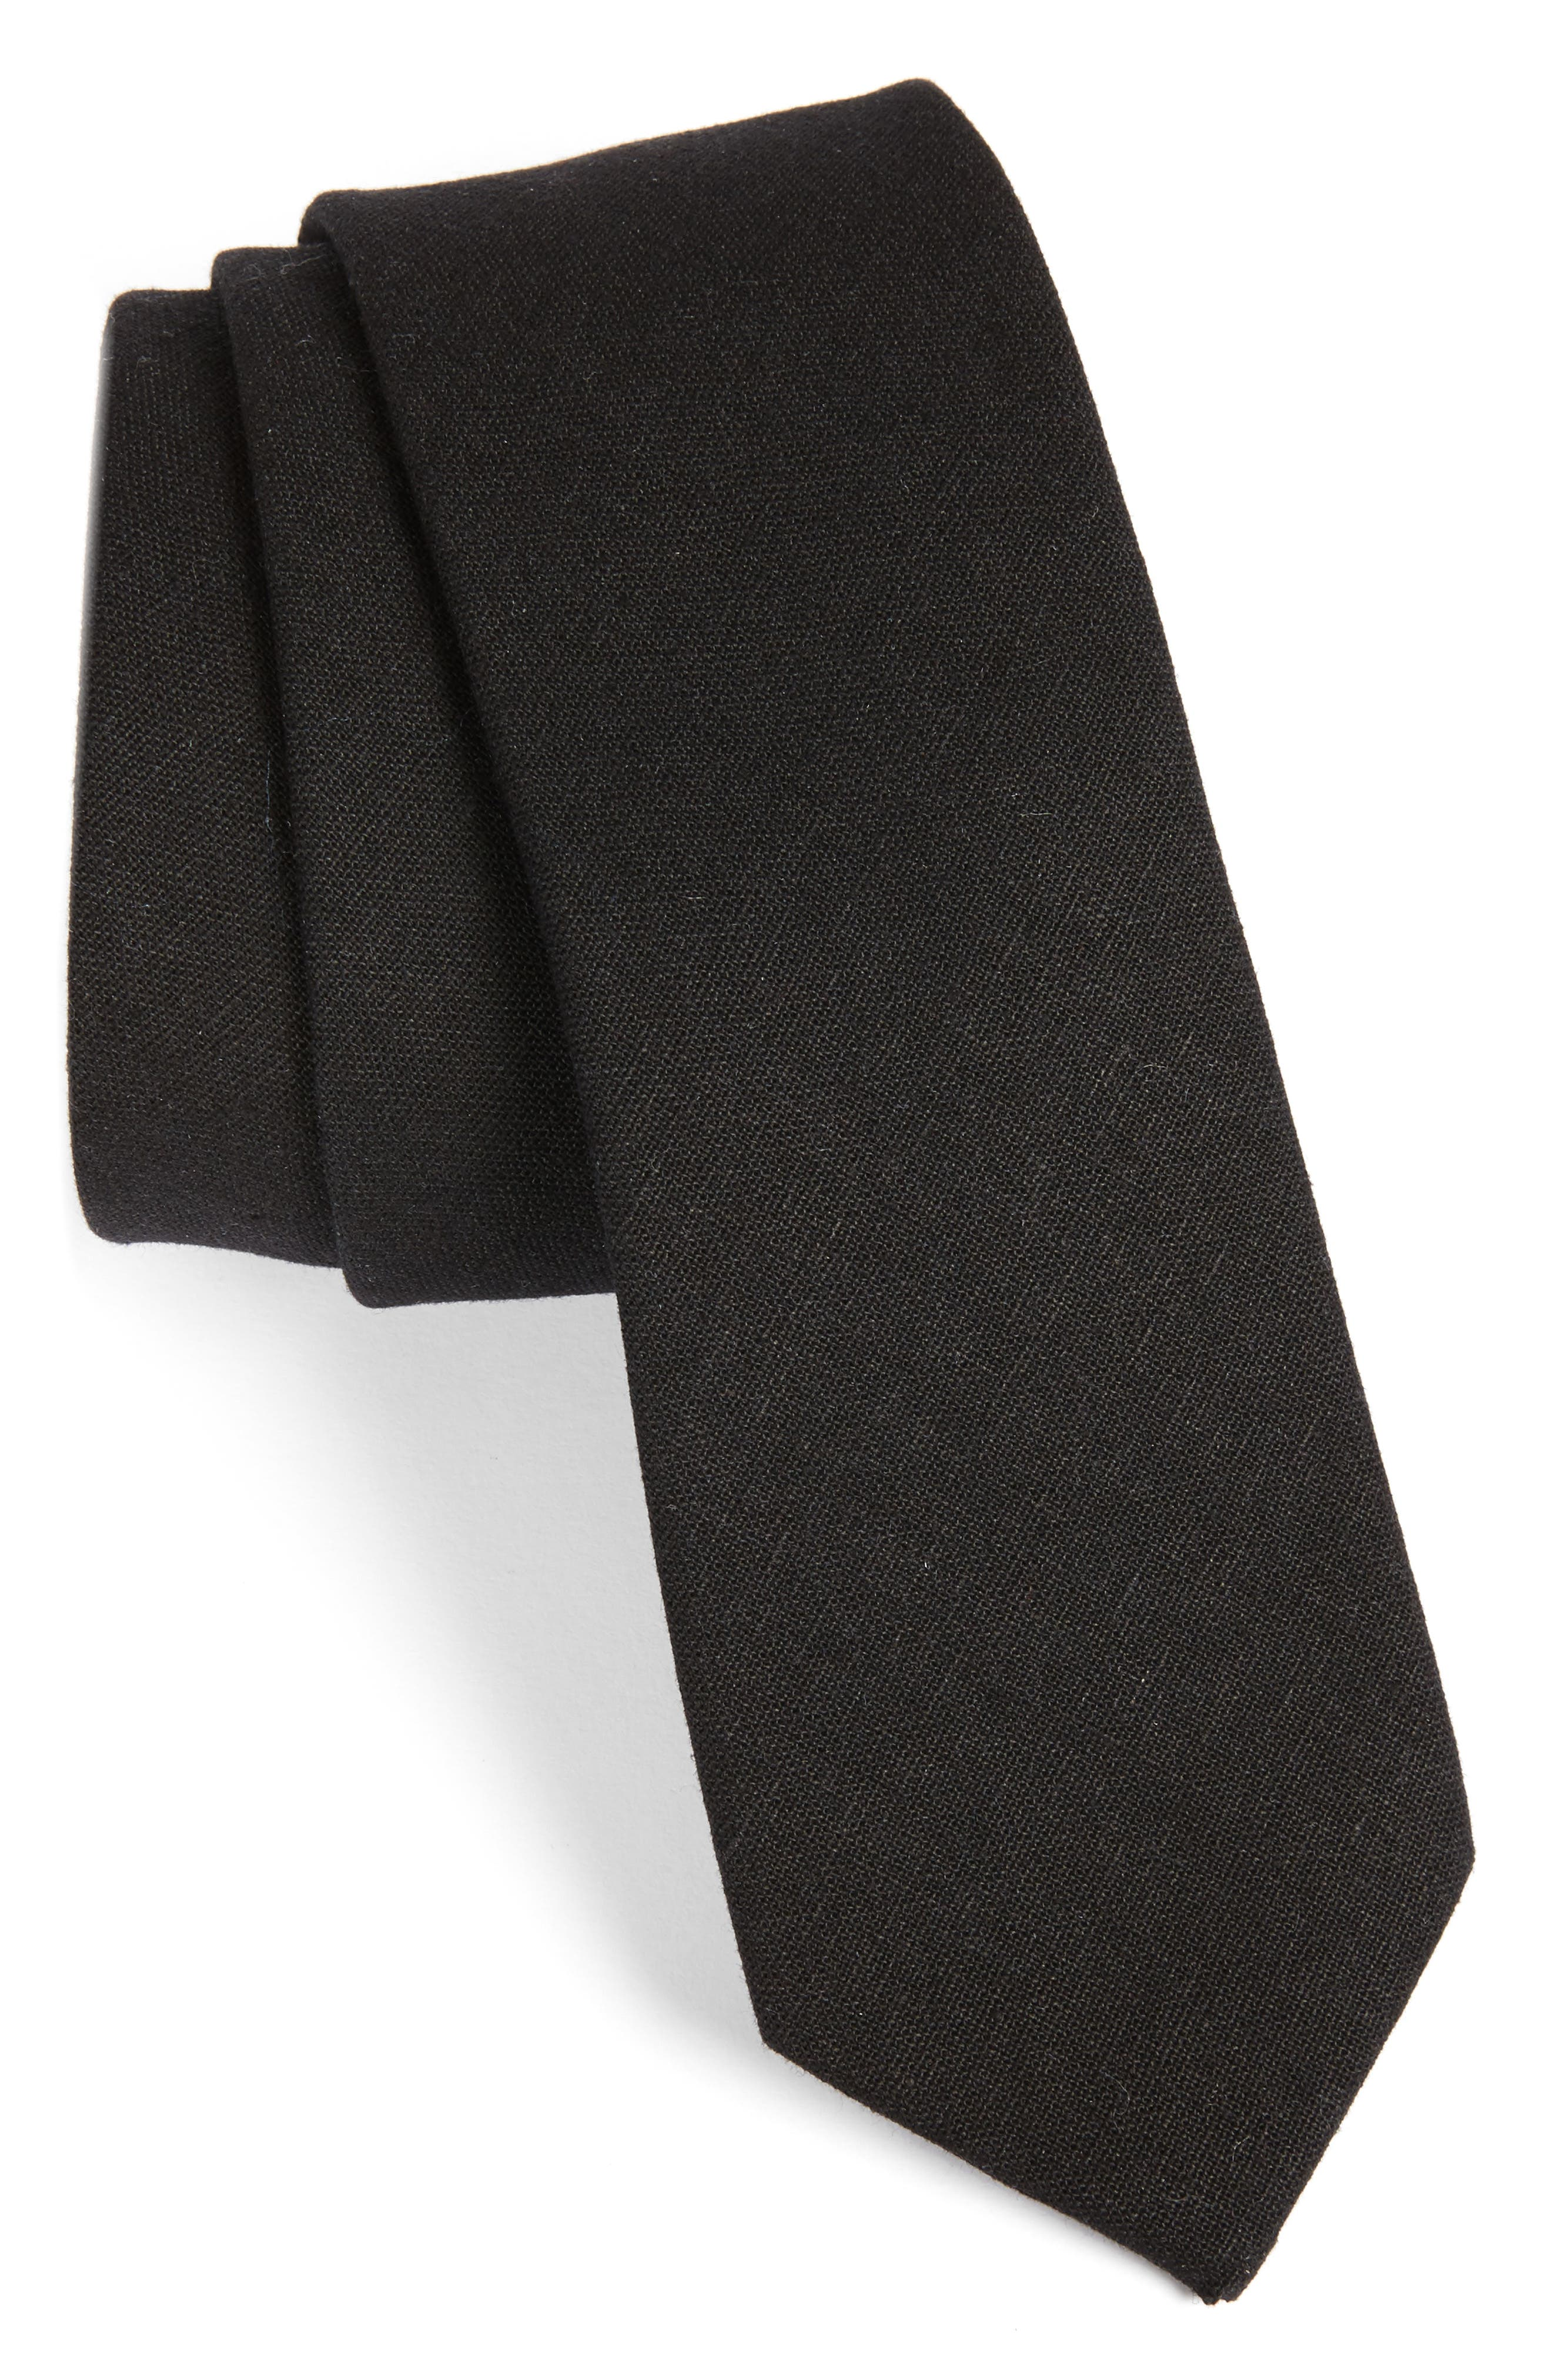 Alternate Image 1 Selected - 1901 Solid Linen & Cotton Tie